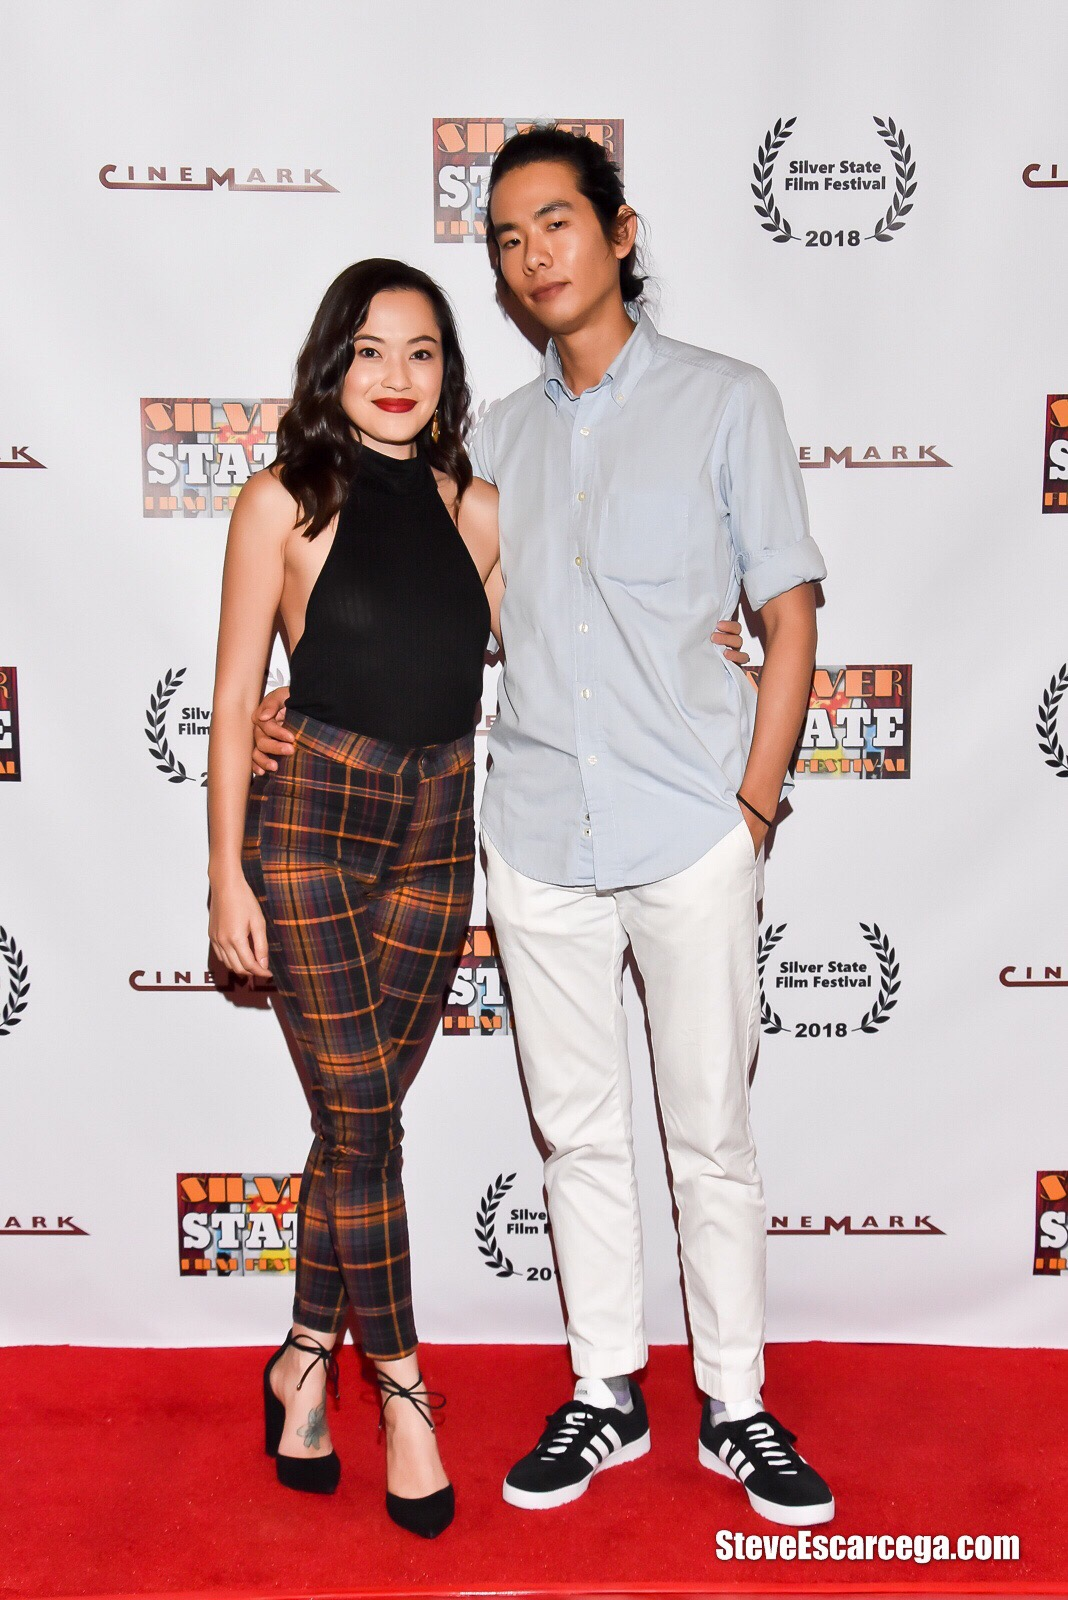 """Trisha Molina and director Adam Jay Ung at the Silver State Film Festival screening of """"The Spirit Room""""; September 9, 2018 Las Vegas, NV"""